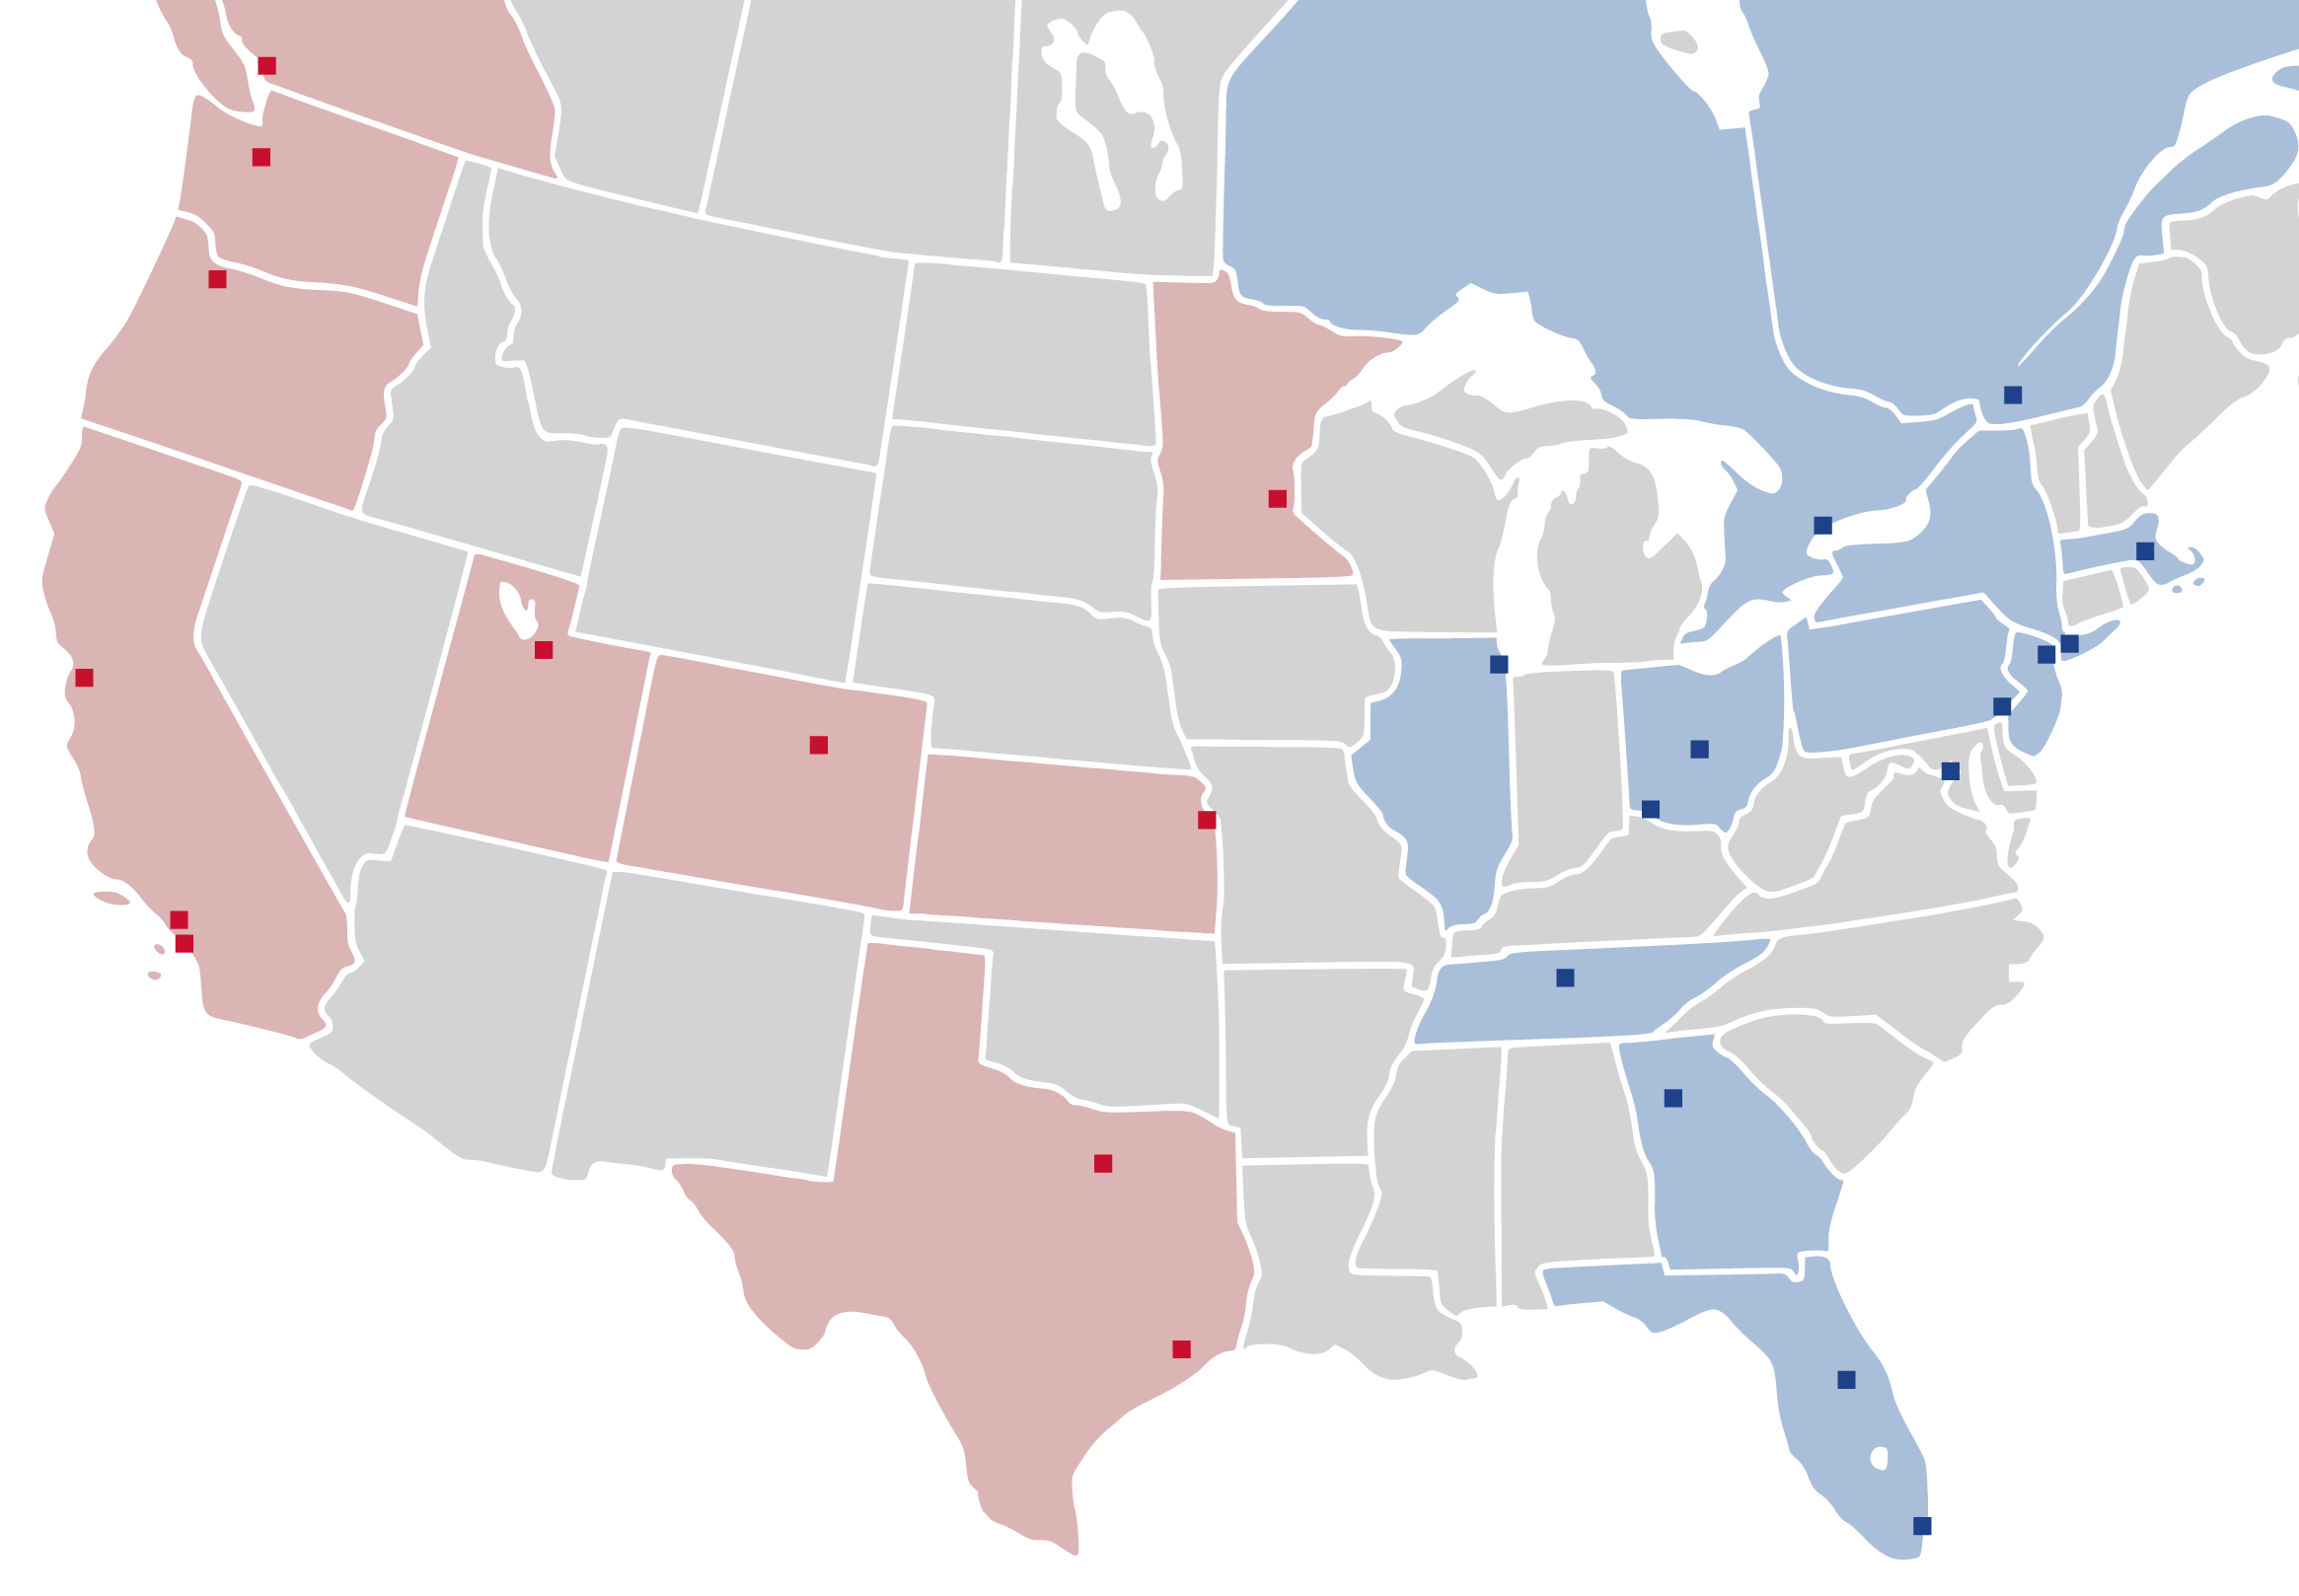 Western Conference Mls Wikipedia